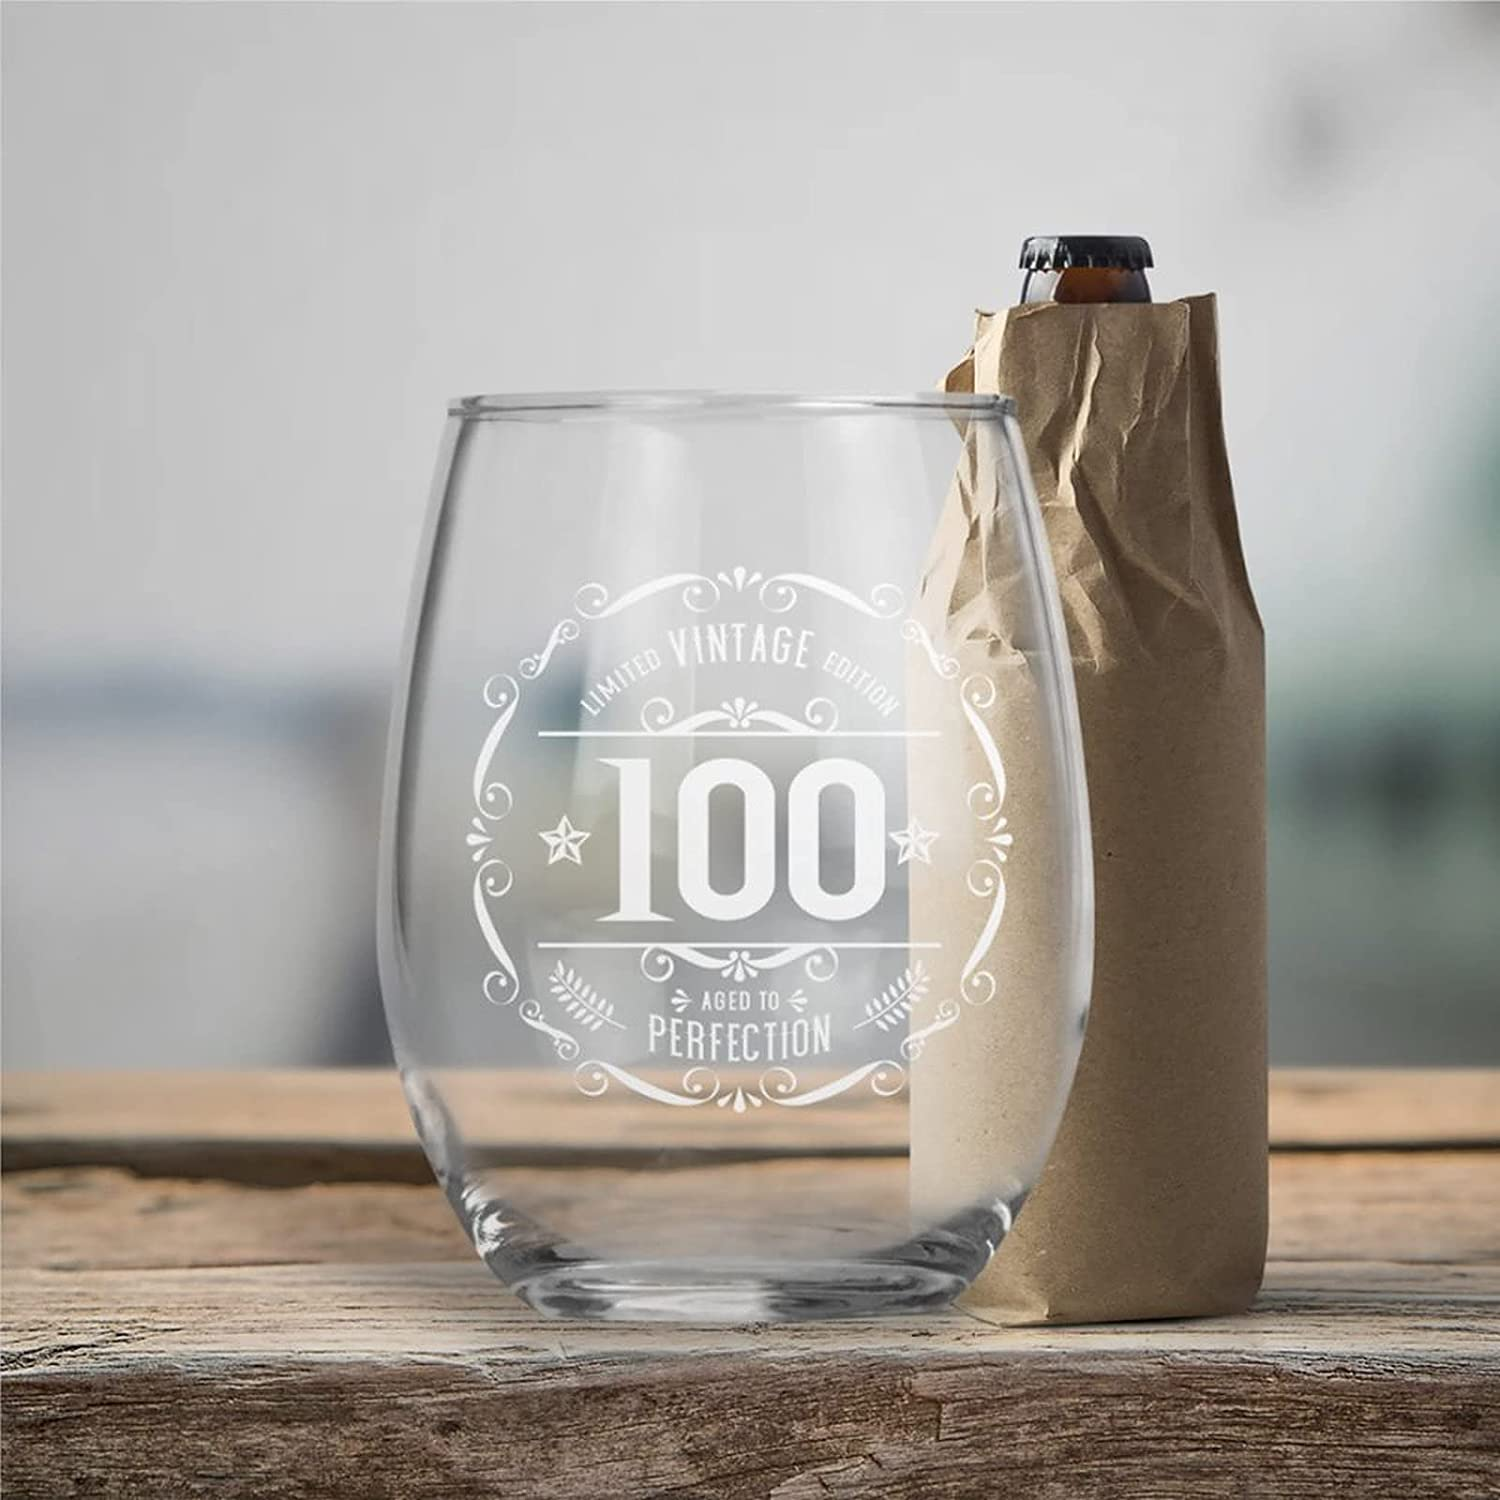 Limited Vintage Edition 100 Age Crystal Perfection Stemless Deluxe price W to